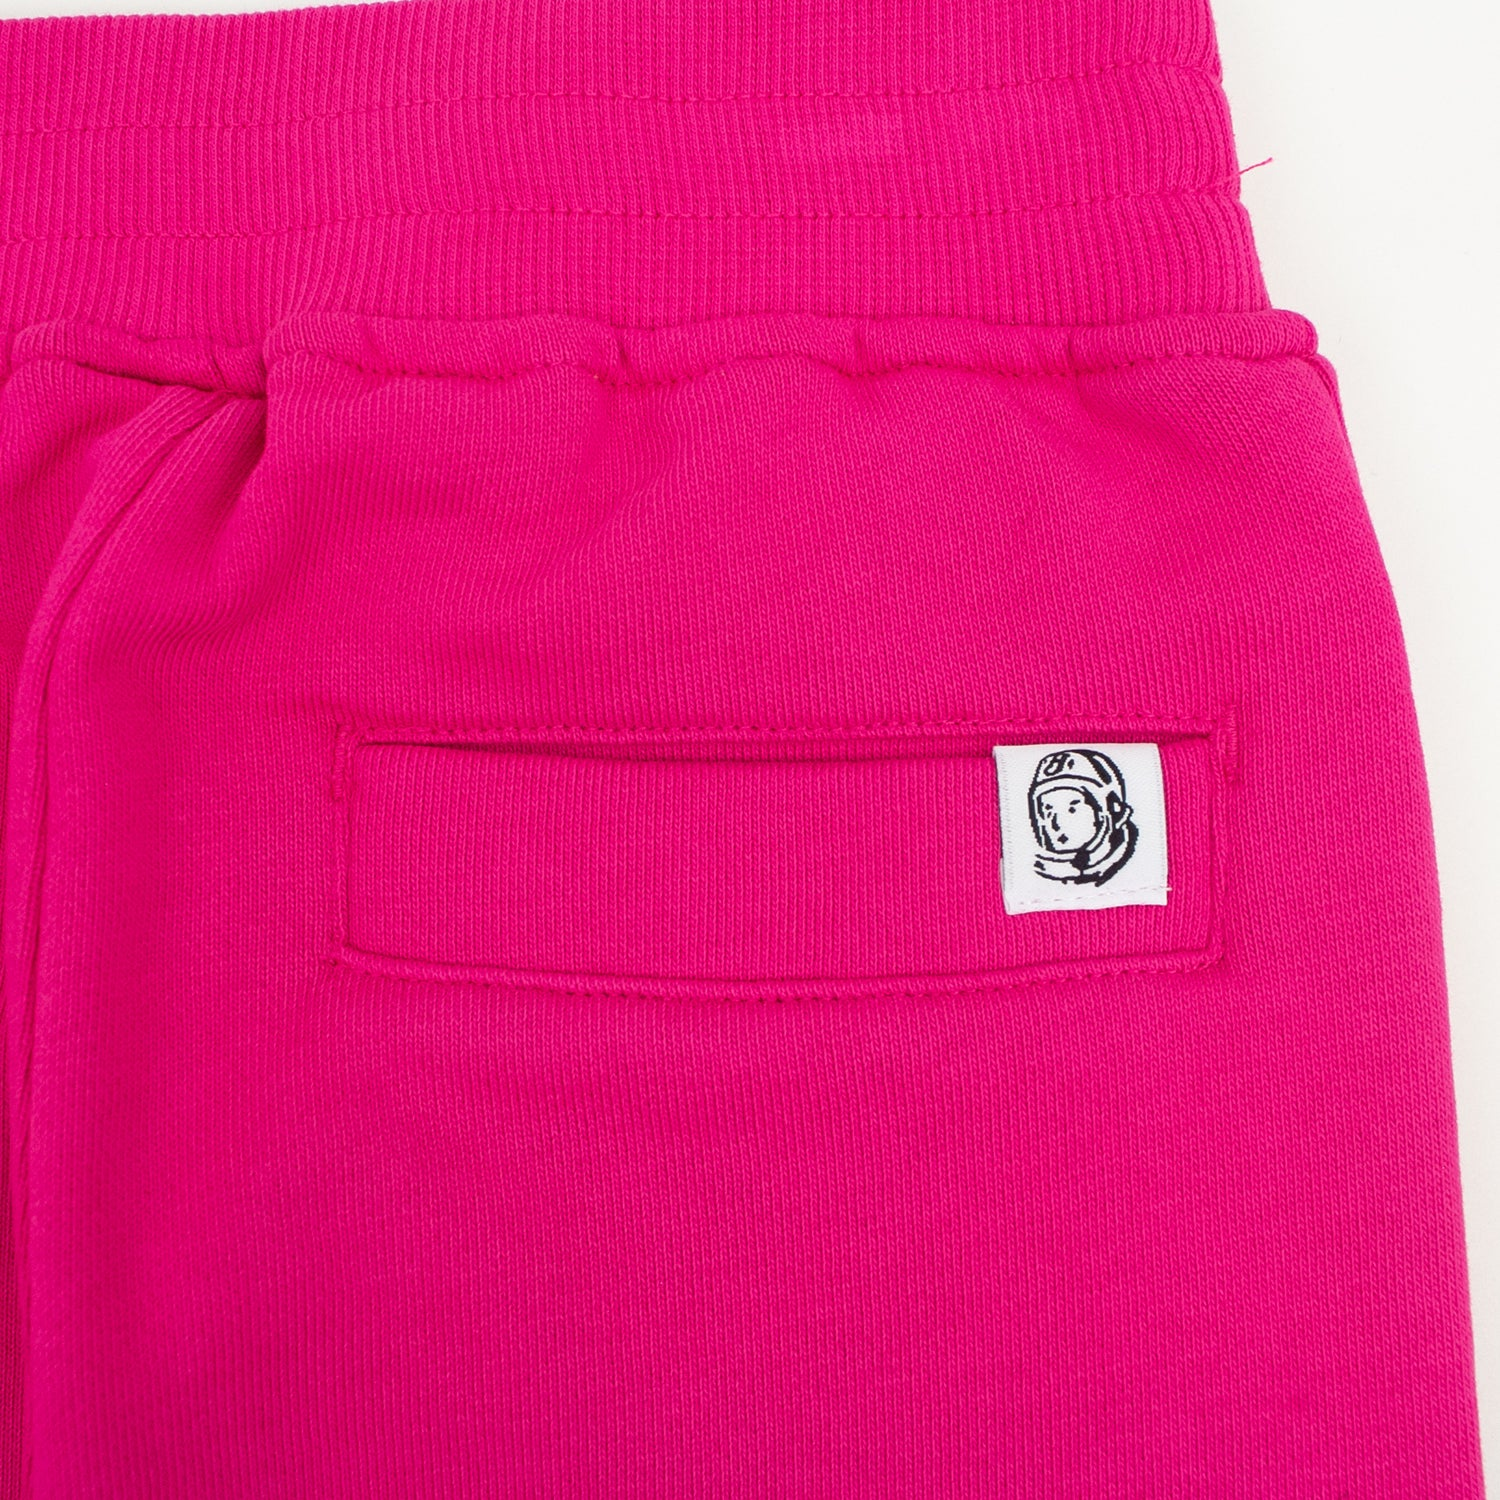 KIDS ARCH SWEATPANT